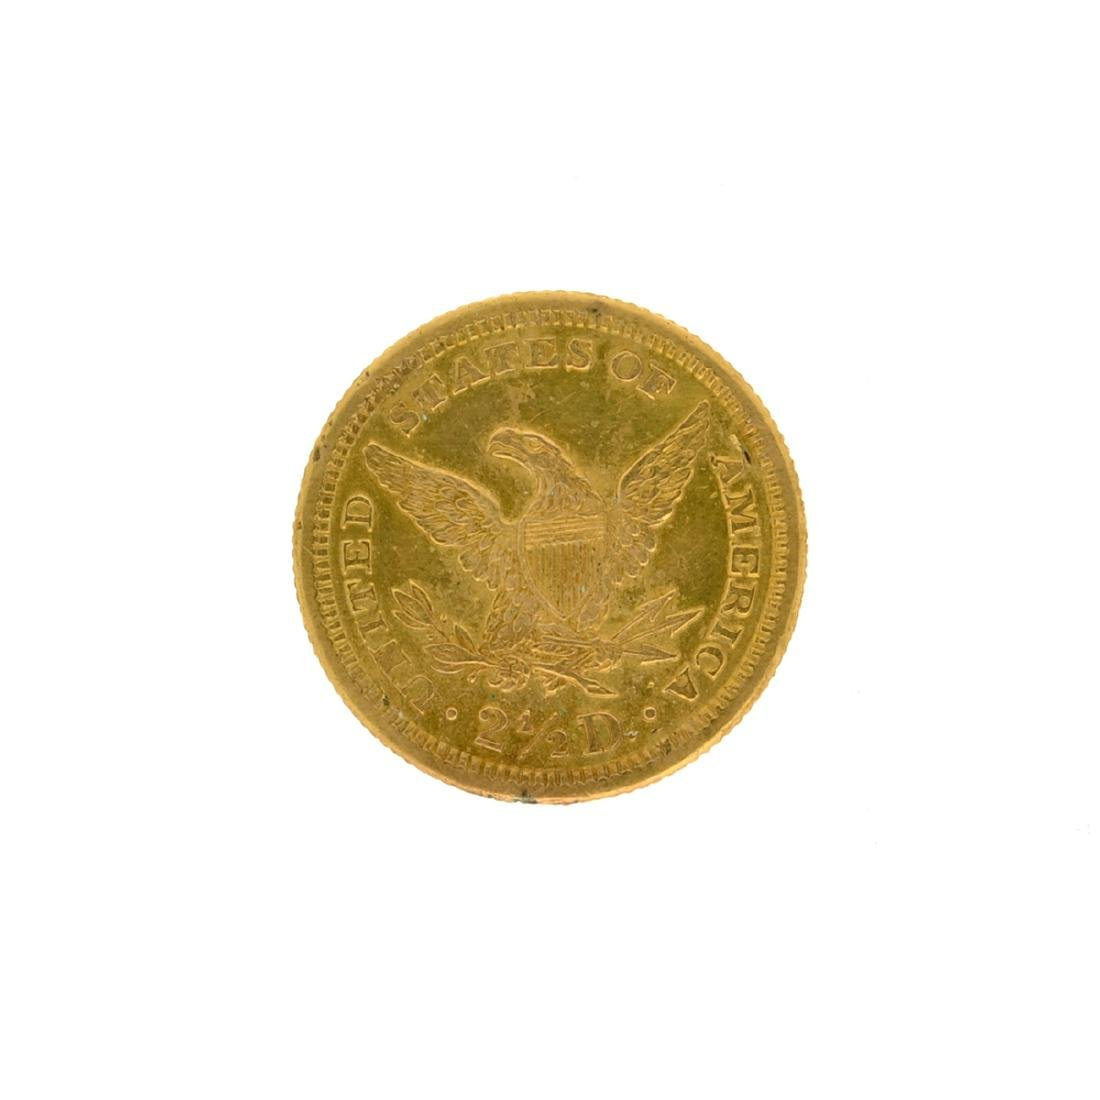 1906 $2.50 U.S. Liberty Head Gold Coin - 2